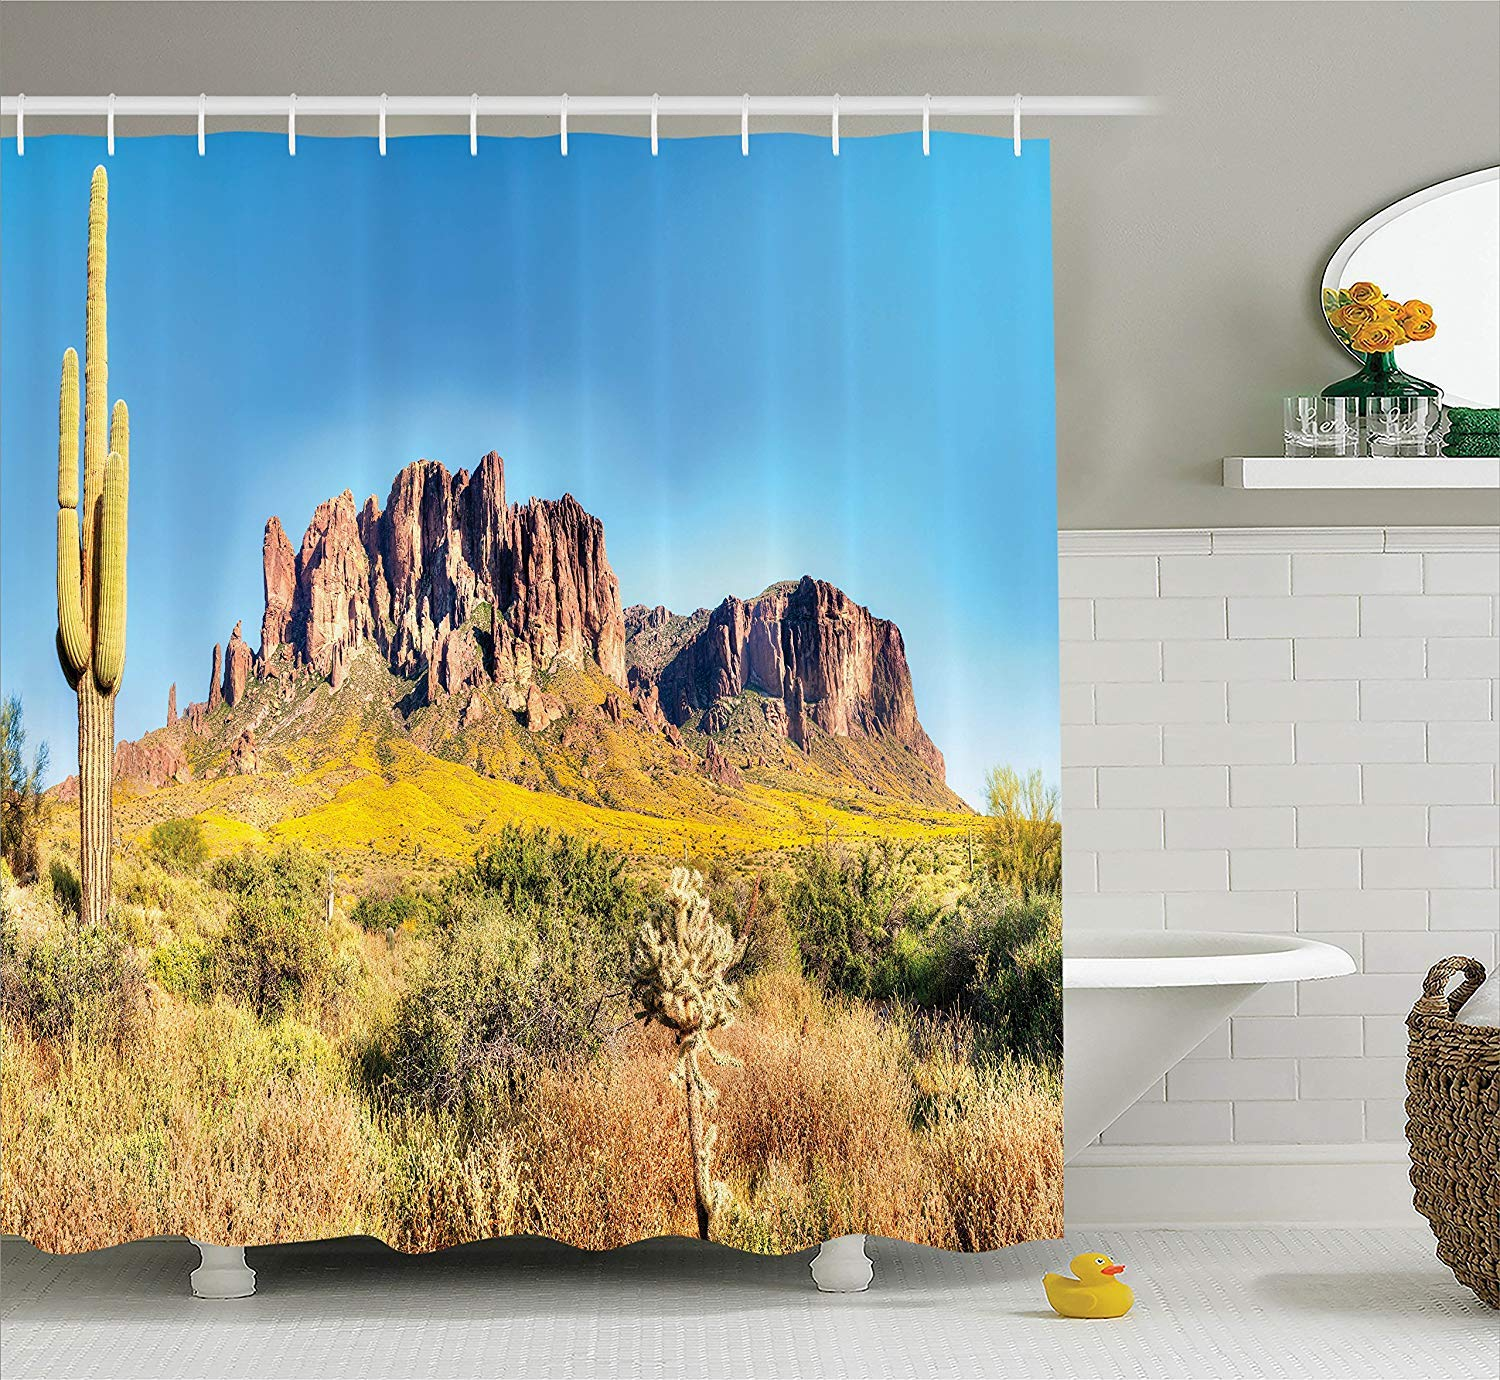 Custom Made Saguaro Cactus Decor Shower Curtain Set, Blooming Brittlebush Superstition Wilderness by The Mountain Phoenix View, Bathroom Curtain Home Decorations Machine Washable, 72 x 84 Inches